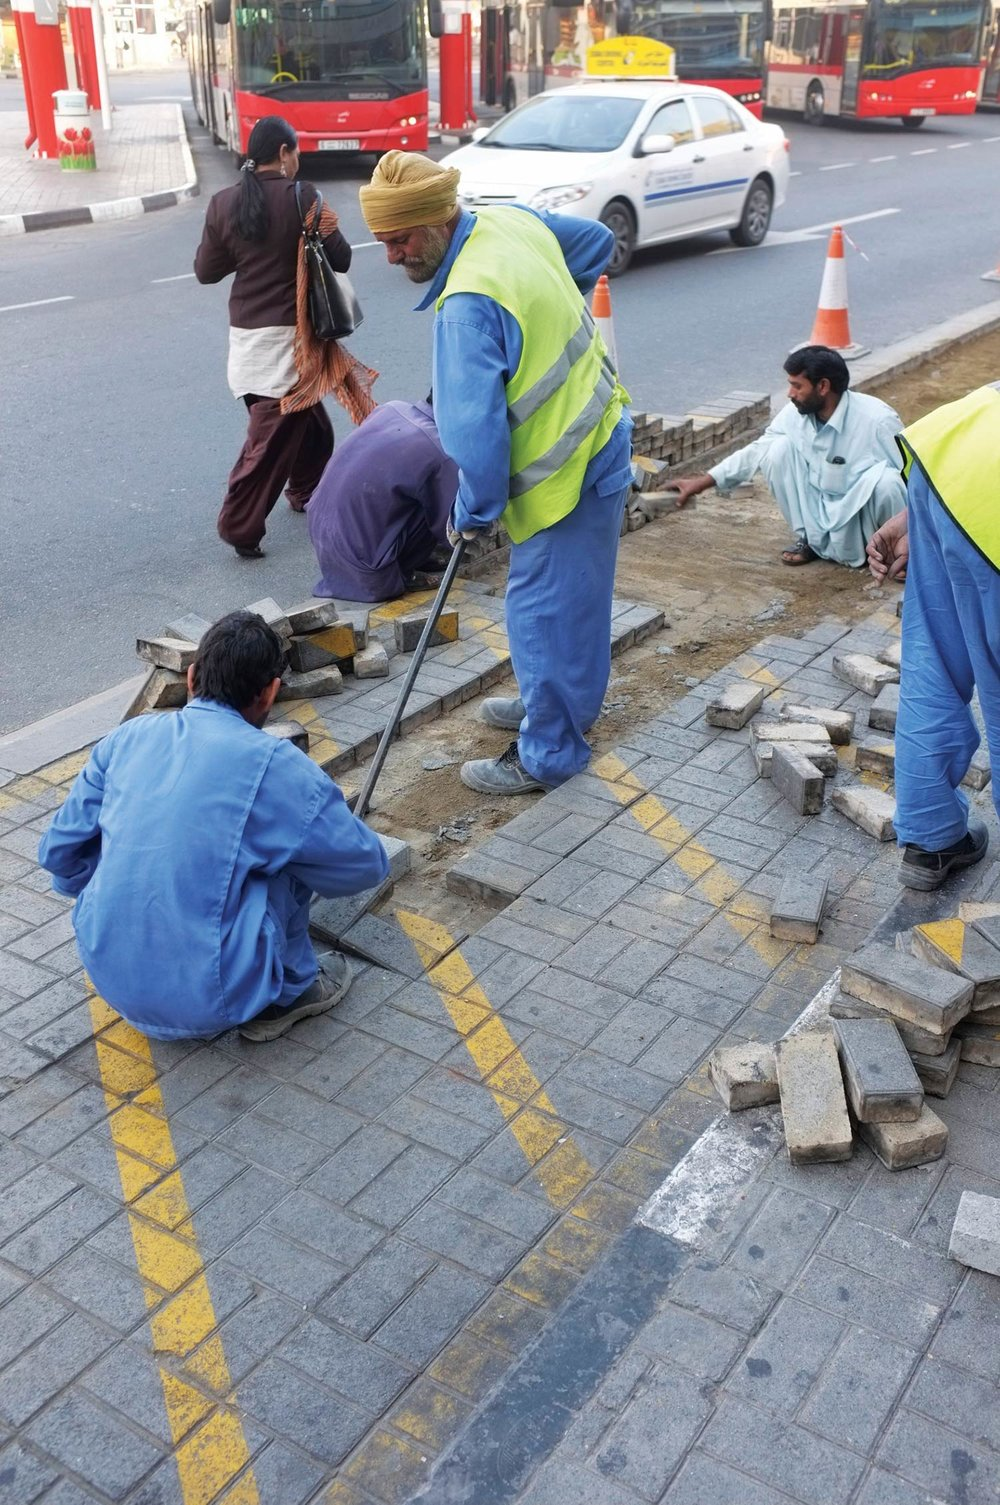 Pavement bricks being removed  Al Ghubaiba bus station, Bur Dubai